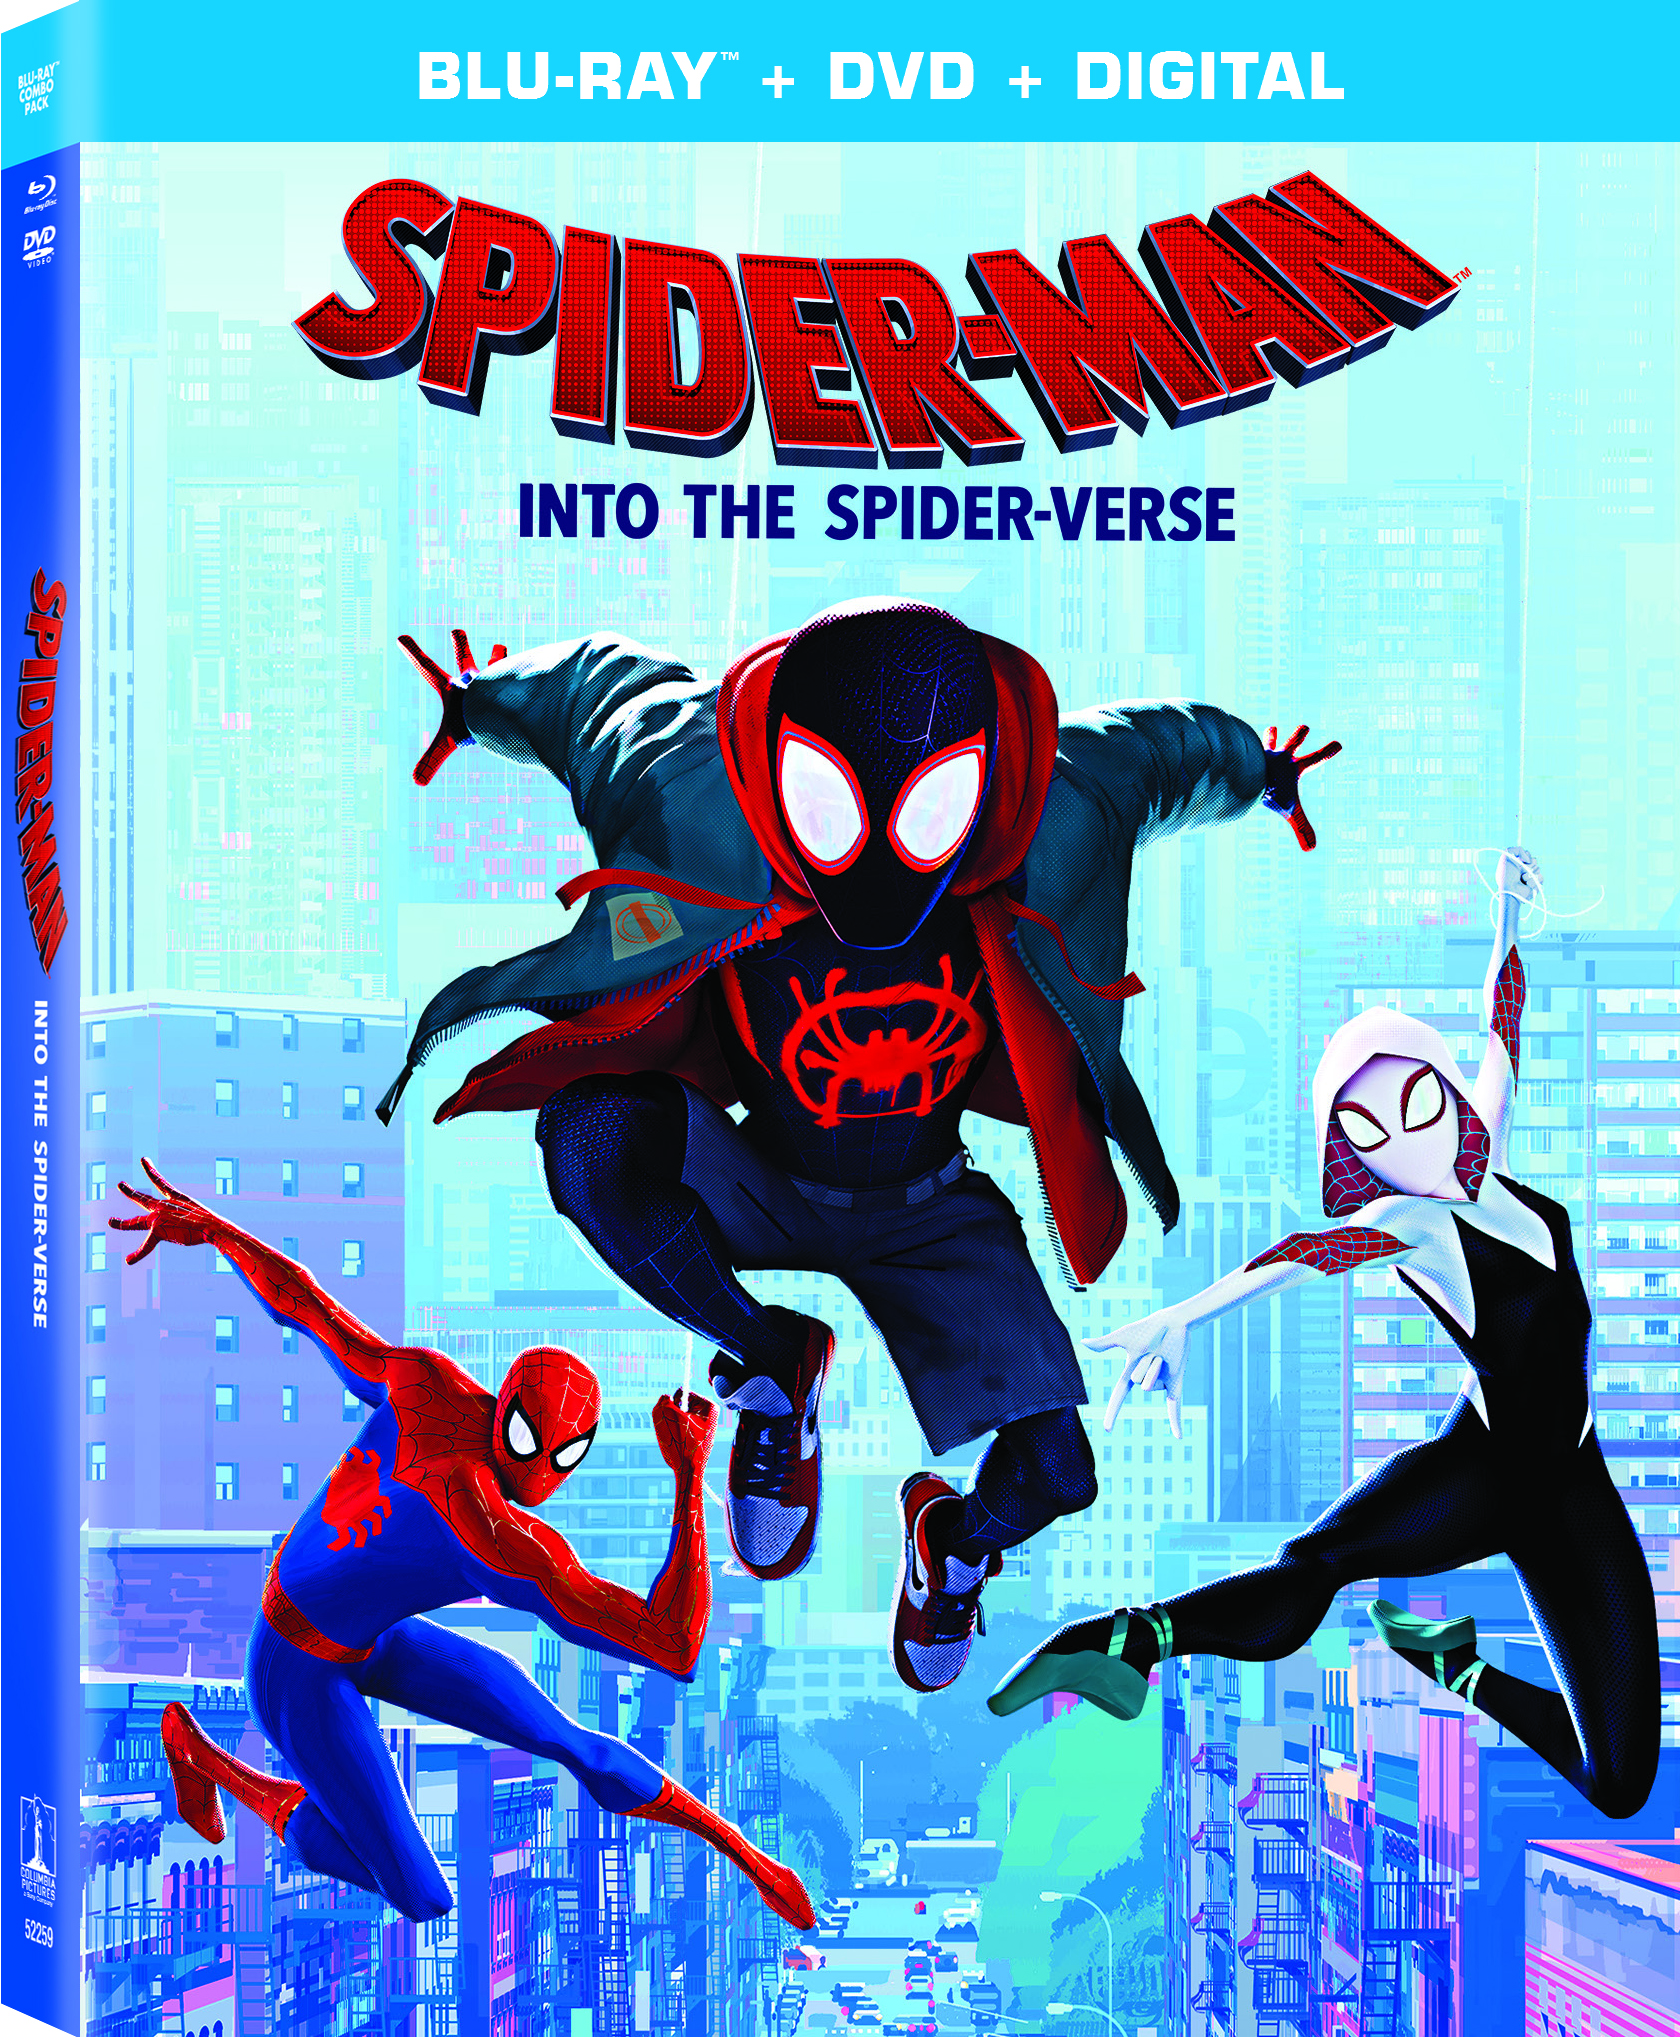 SPIDER-MAN: INTO THE SPIDER-VERSE, Blu-ray